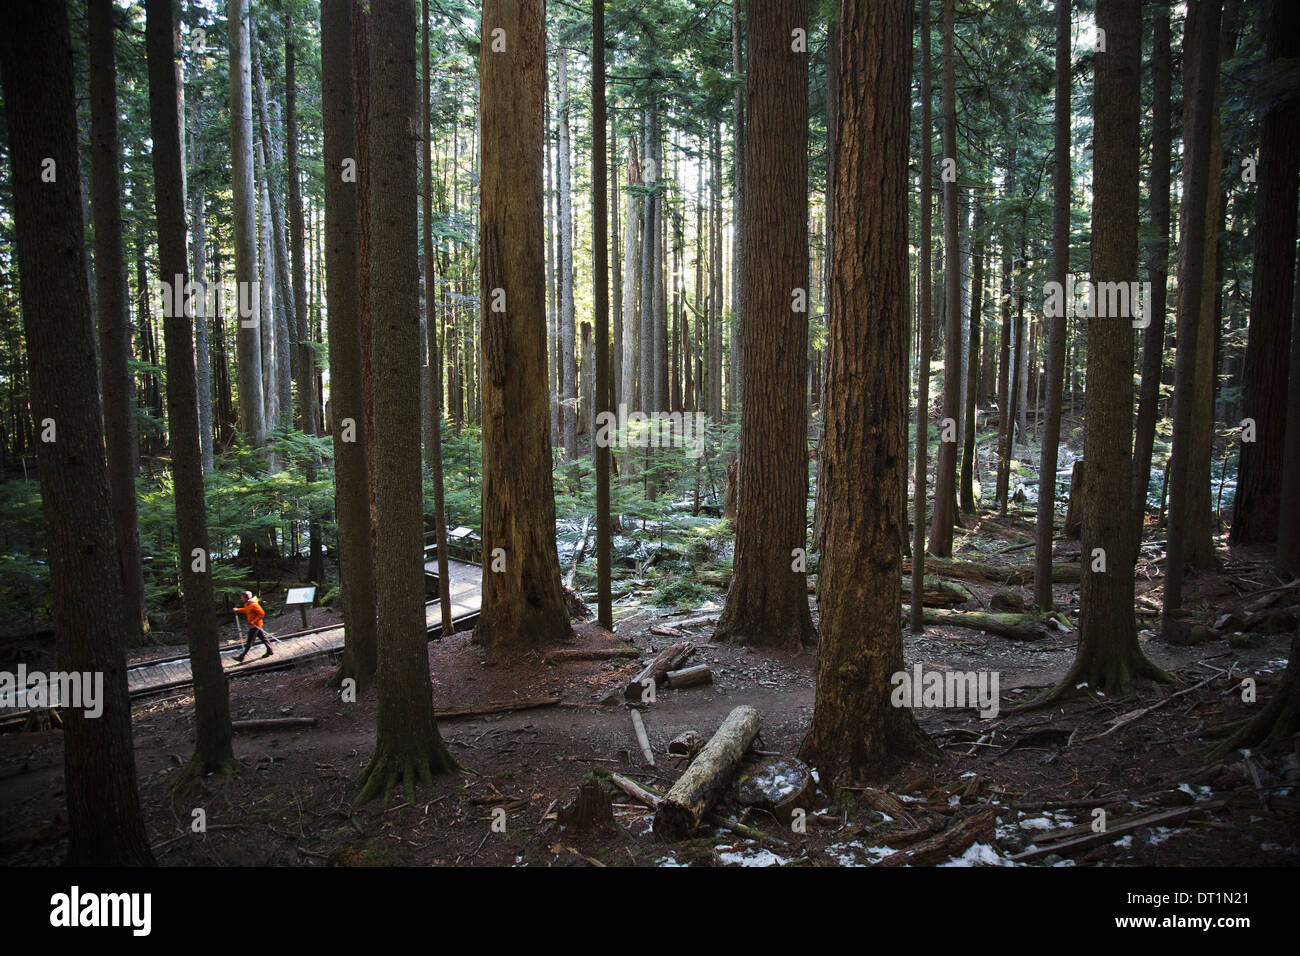 A man walking up a trail surrounded by tall trees in a thick forest near North Bend Washington - Stock Image